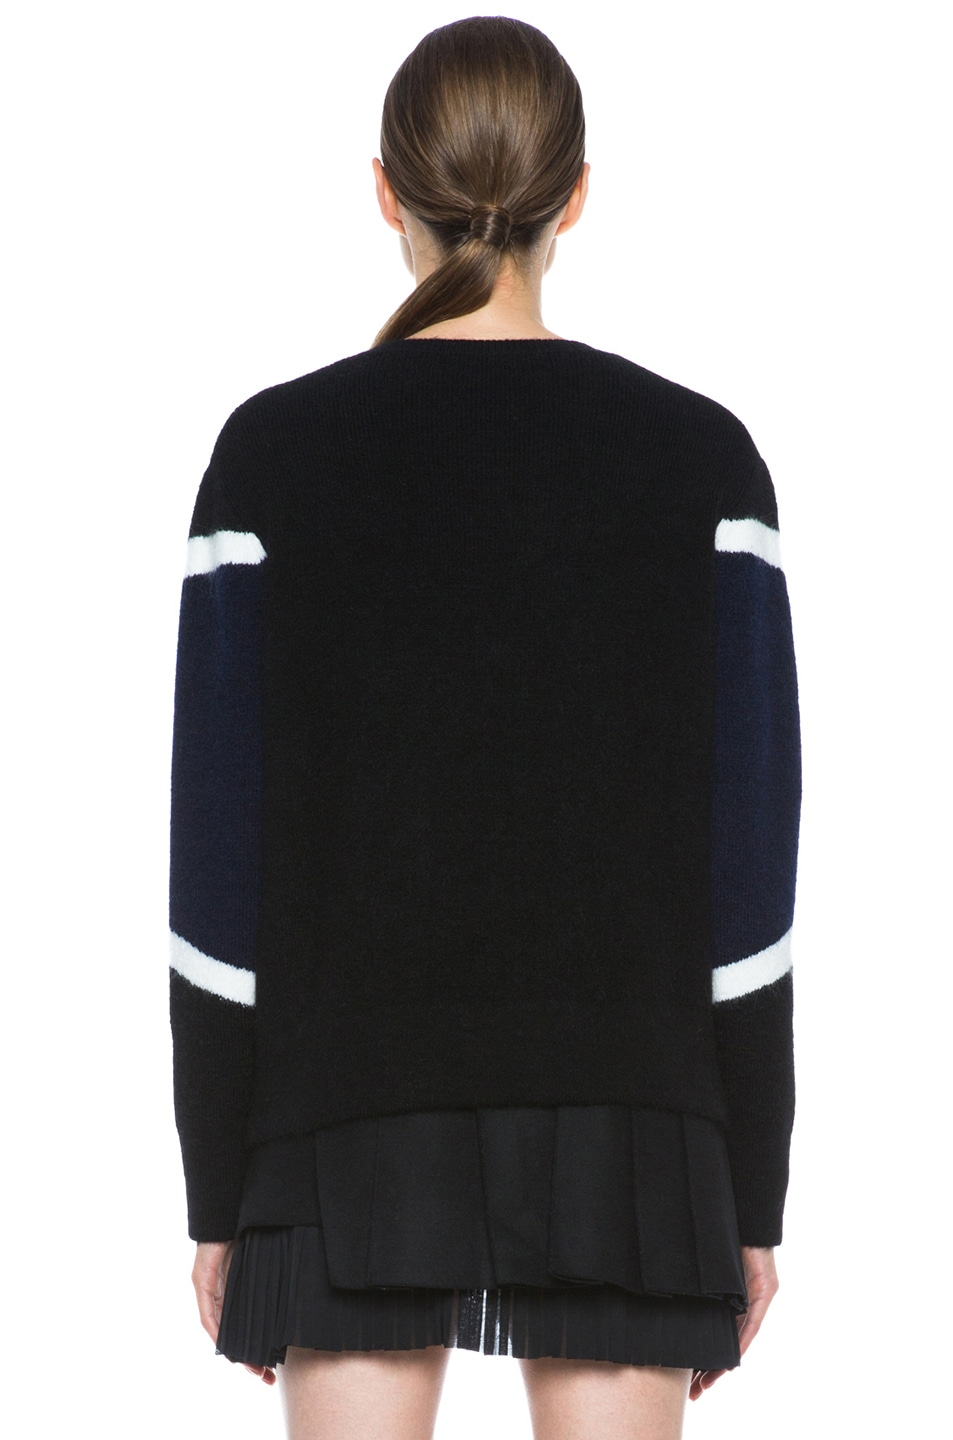 Image 4 of Neil Barrett Modernist Mohair-Blend Crew Neck Knit in Black & Navy